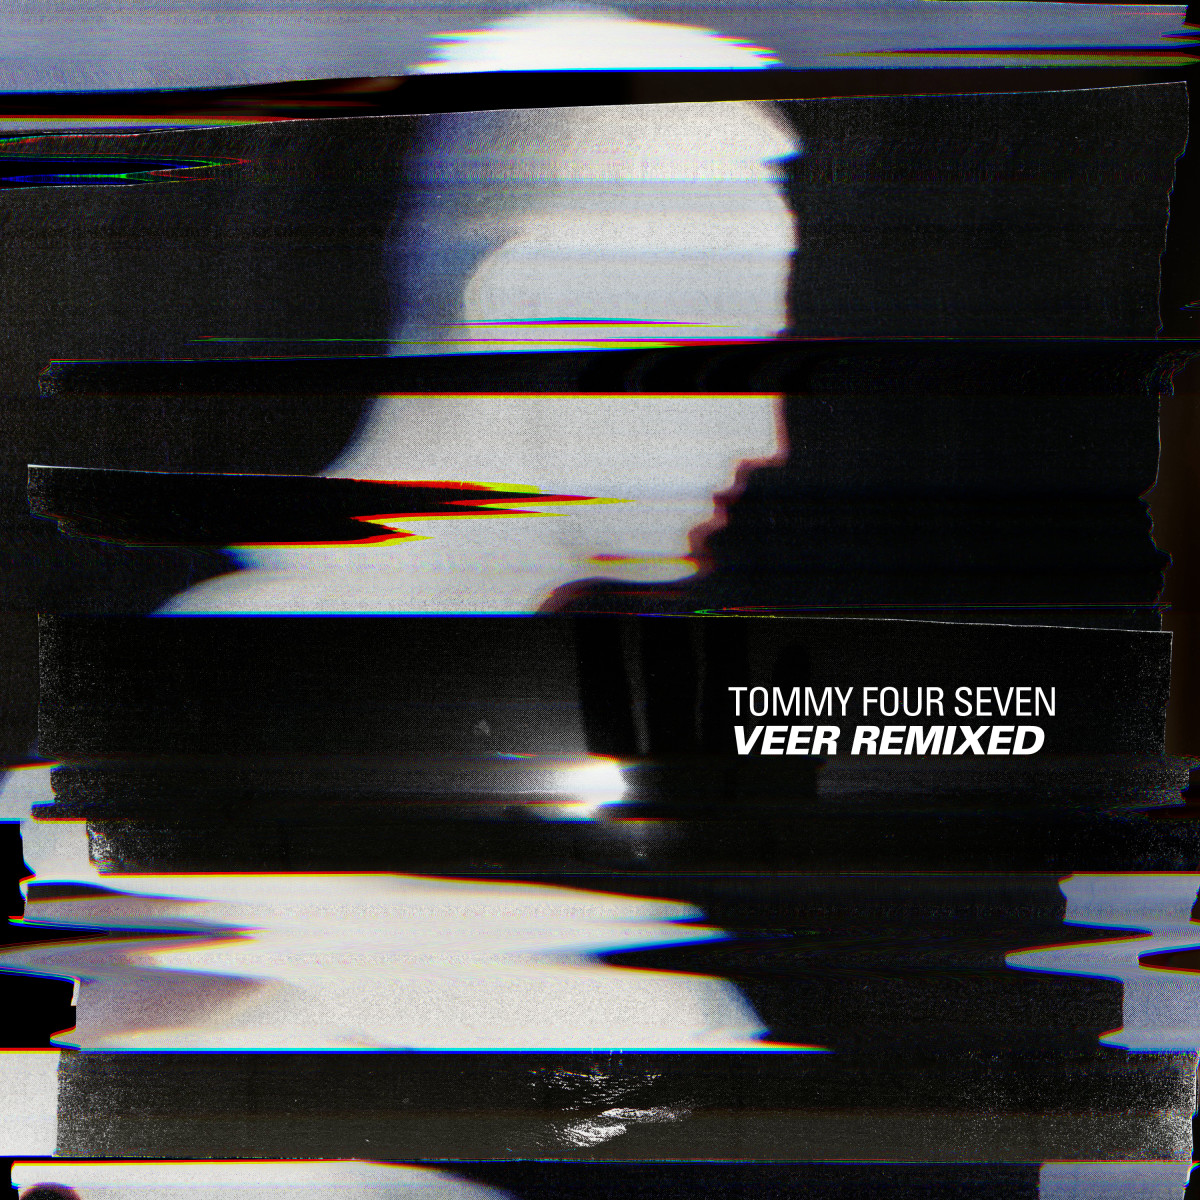 Artwork_TommyFourSeven_VeerRemixed